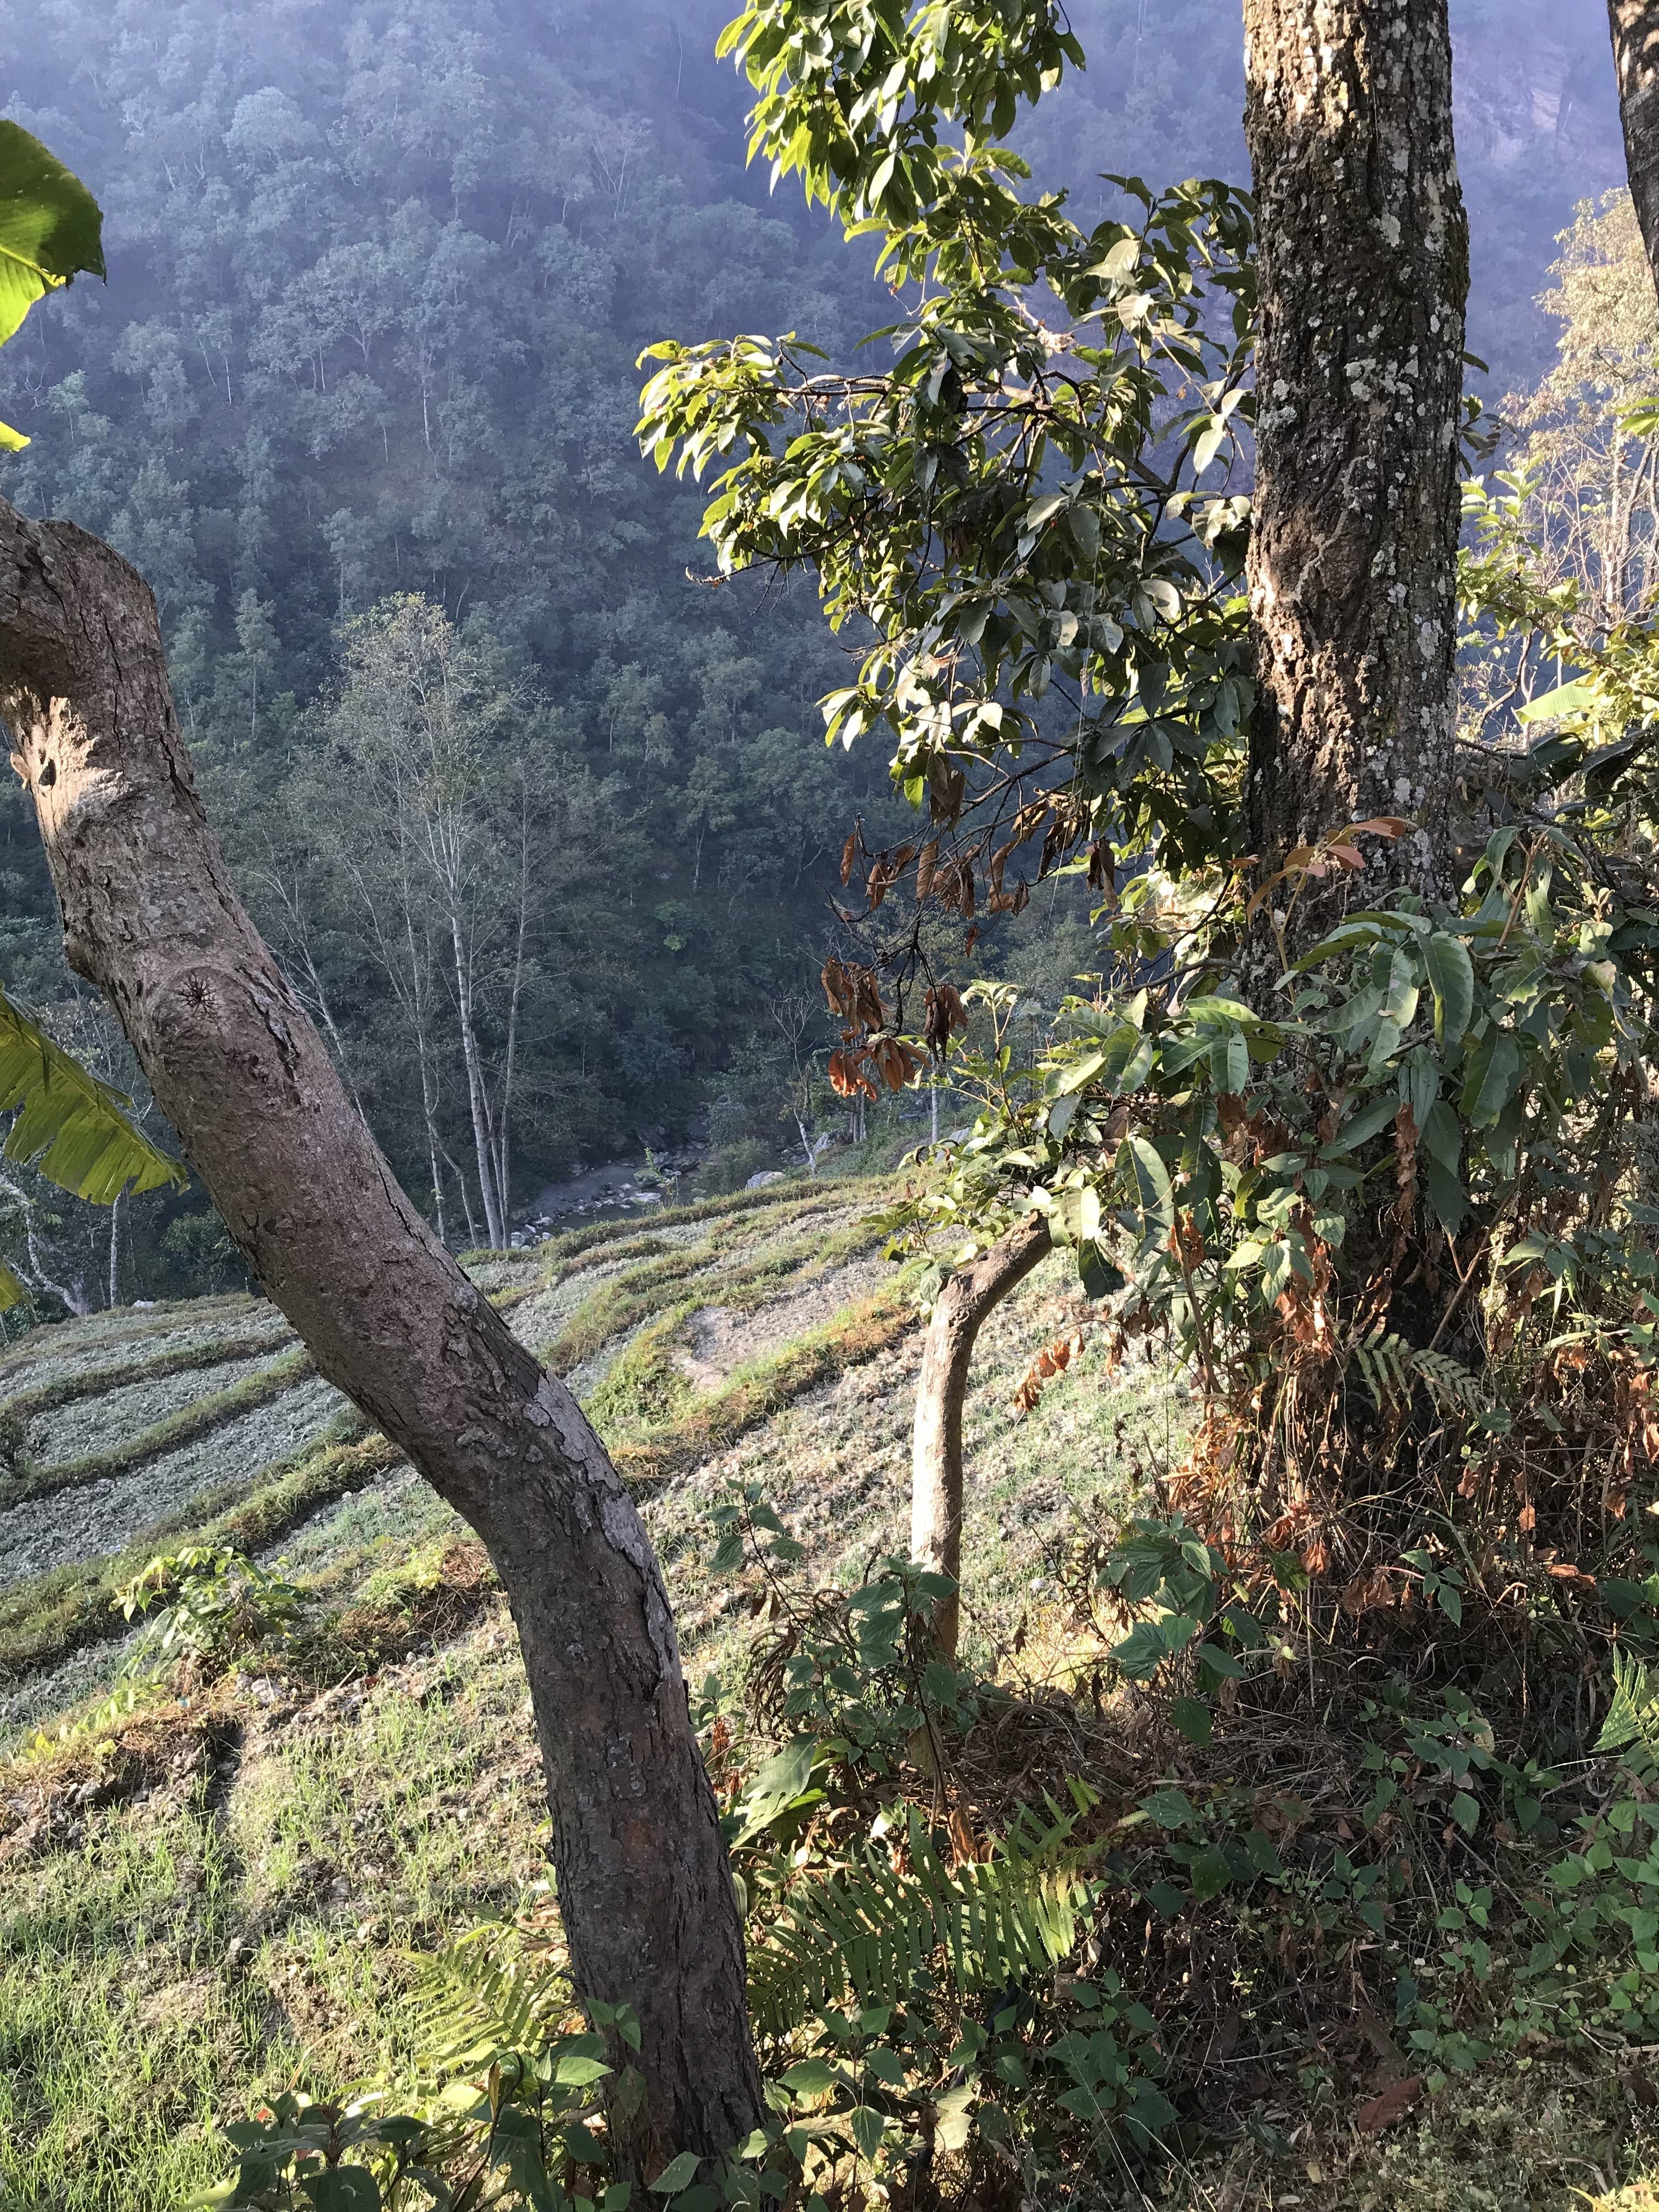 Free stock photo of Baglung West Nepal